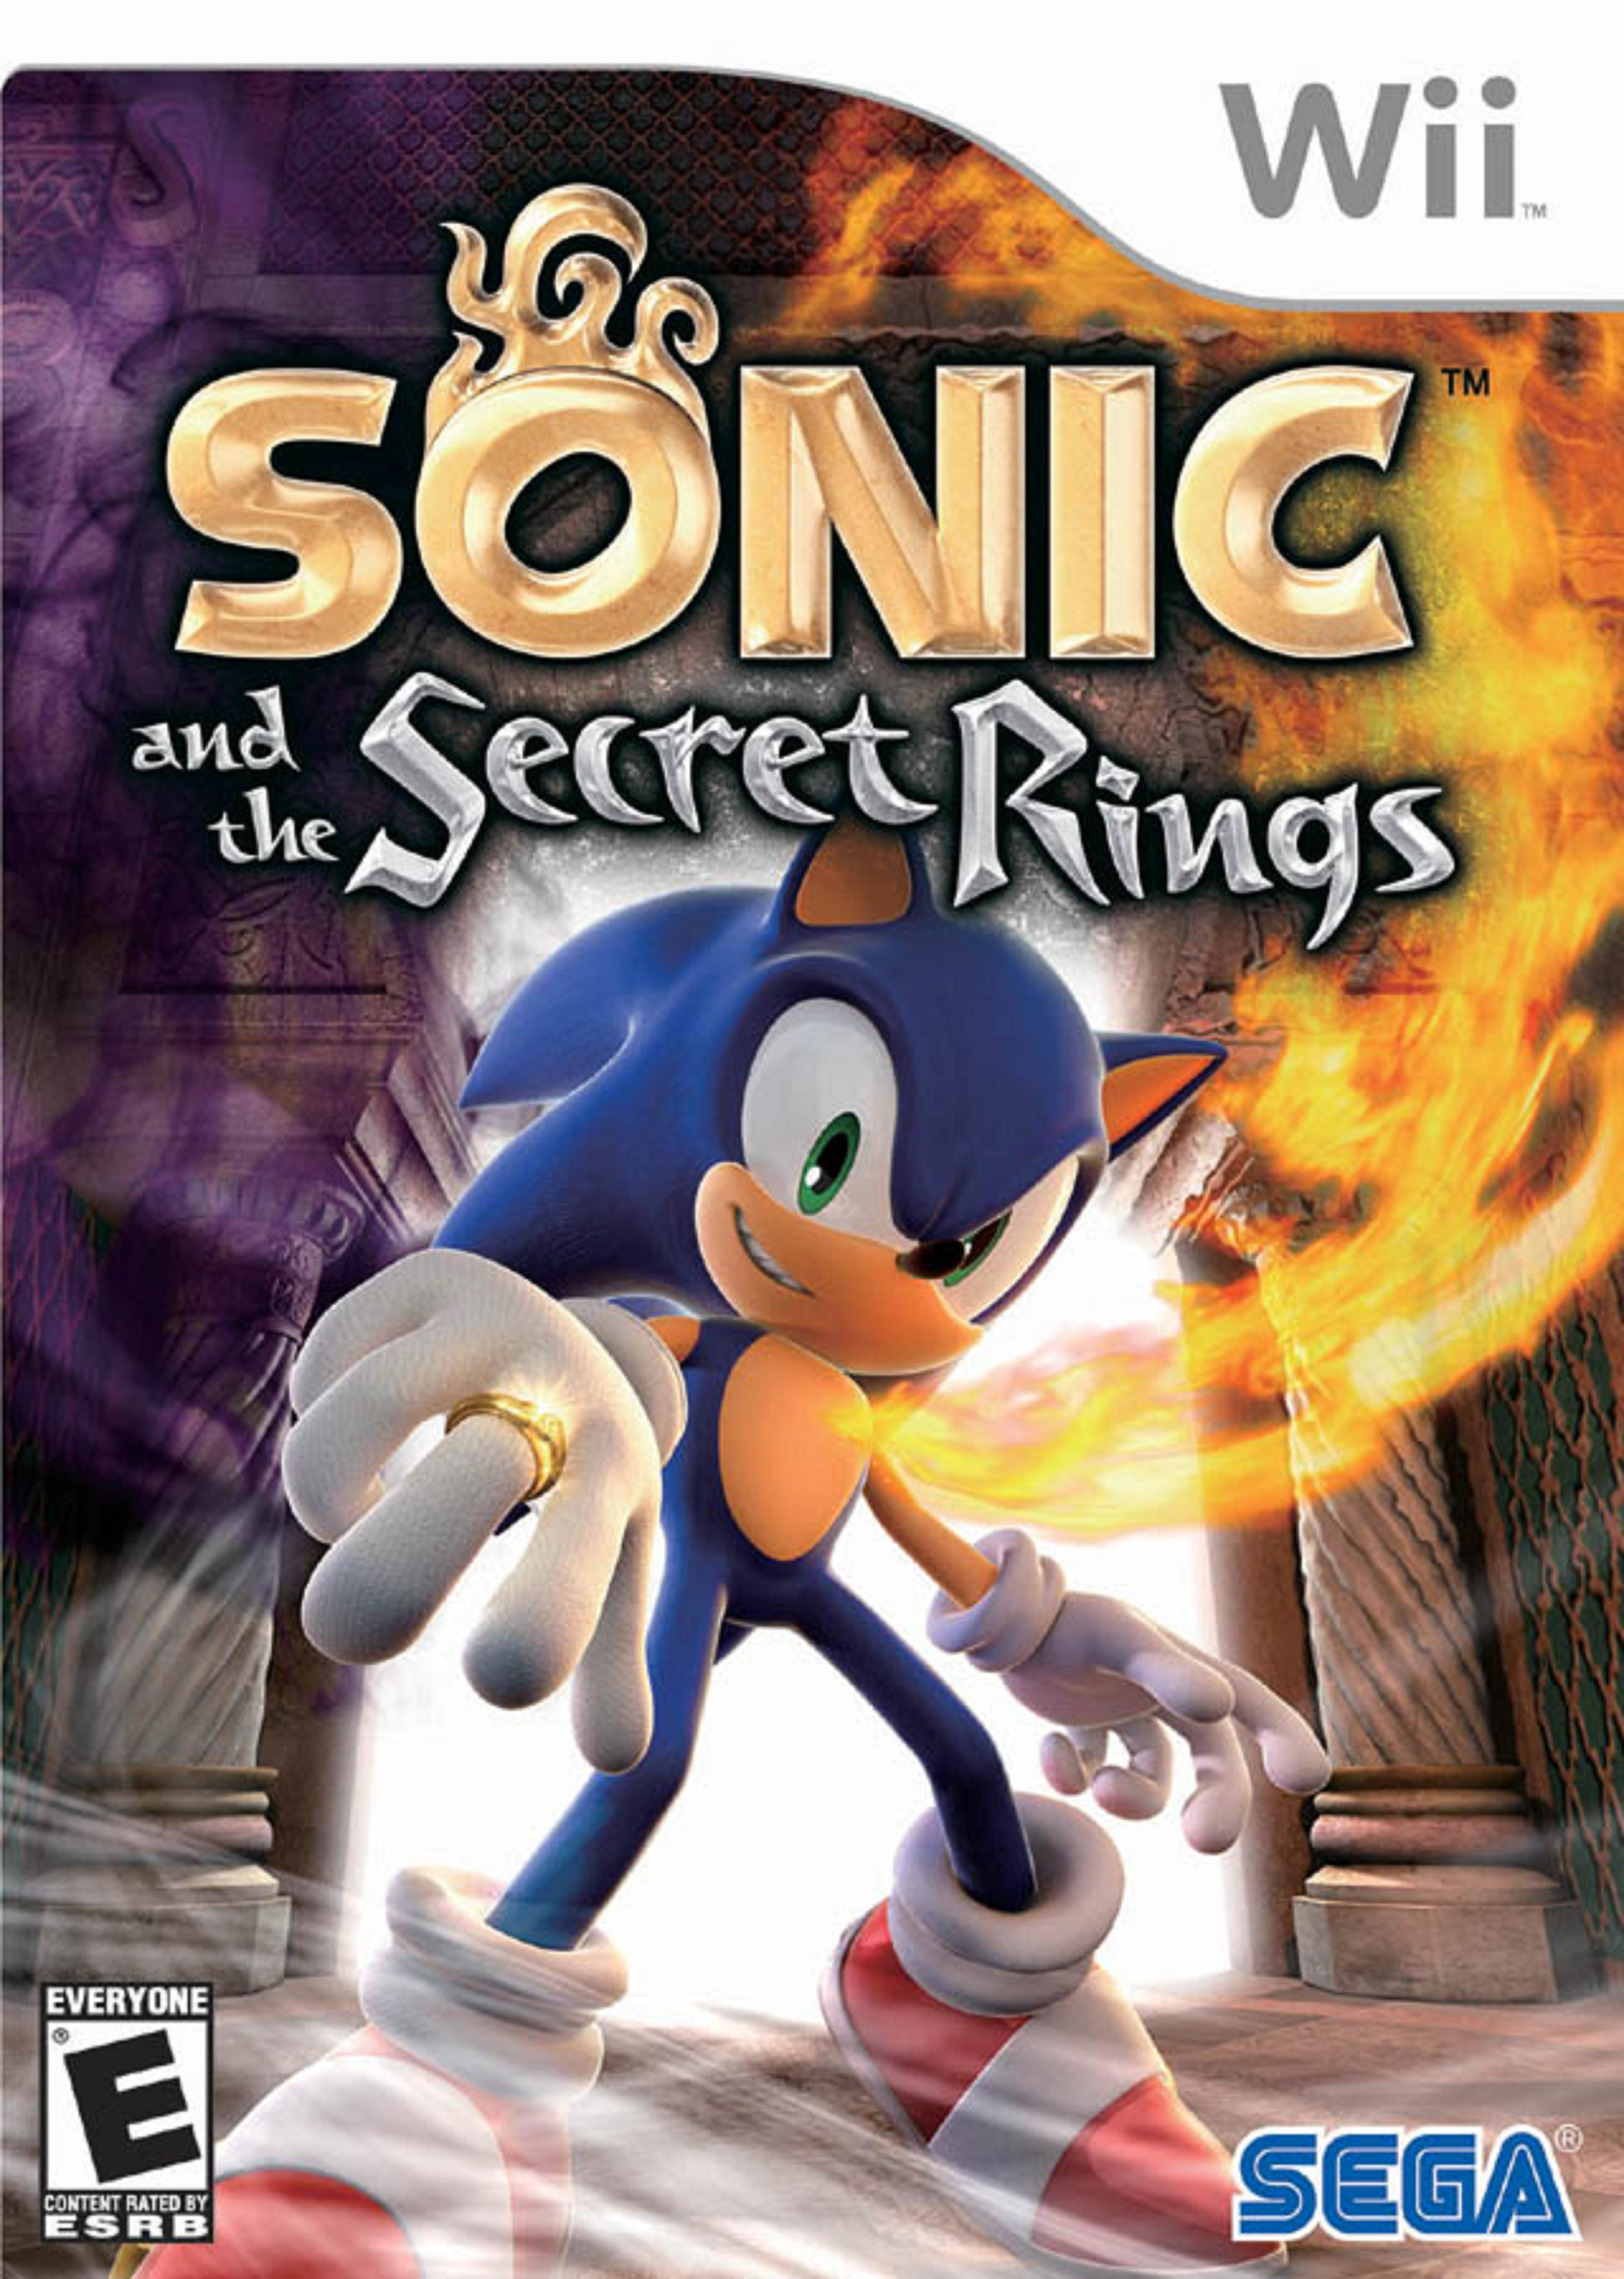 Sonic and the Secret Rings | Sonic News